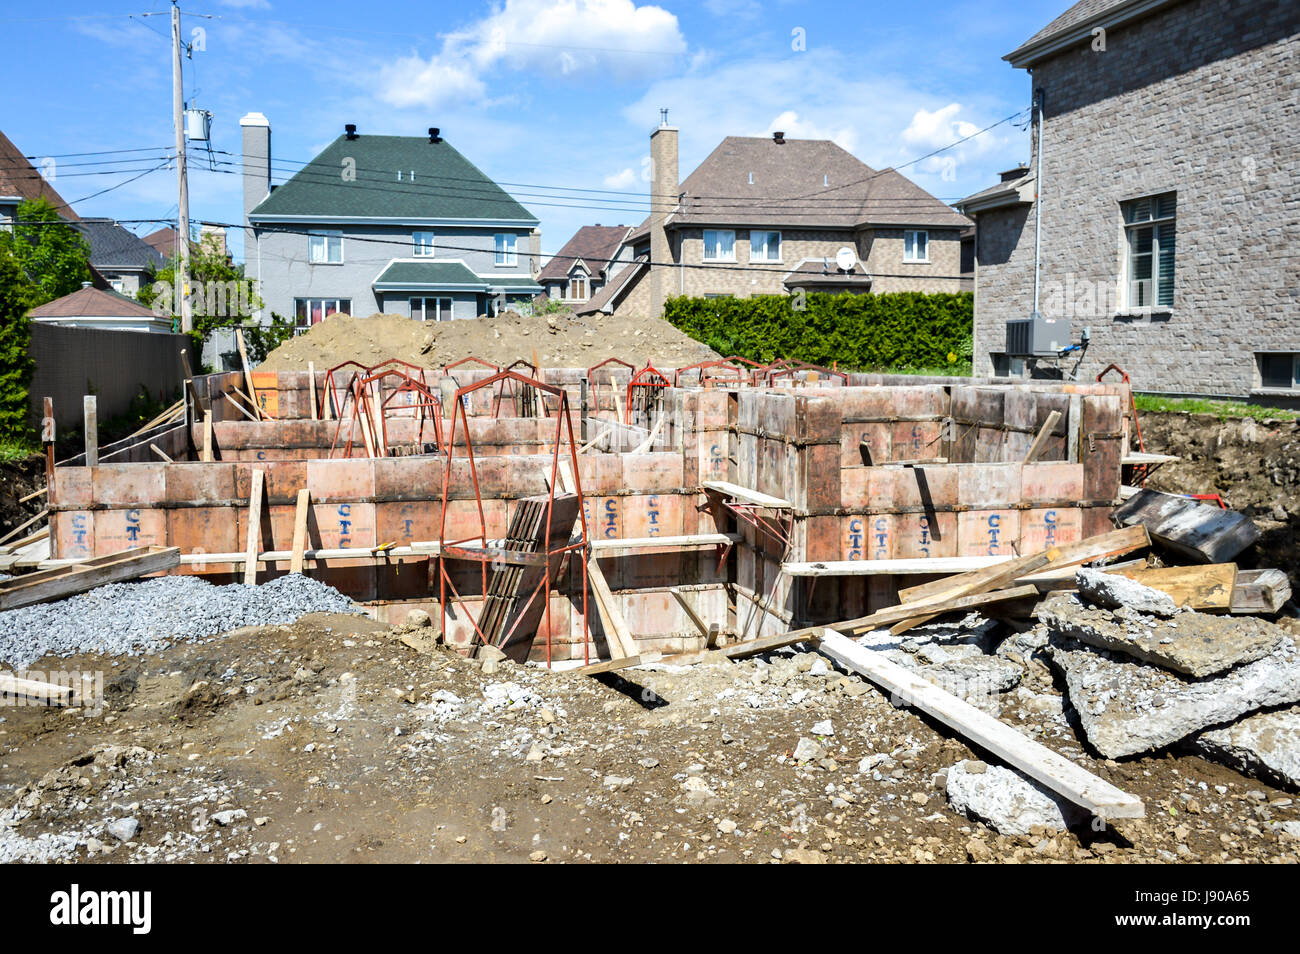 Montreal, Canada - May 27, 2017:The construction of an expensive house - Stock Image